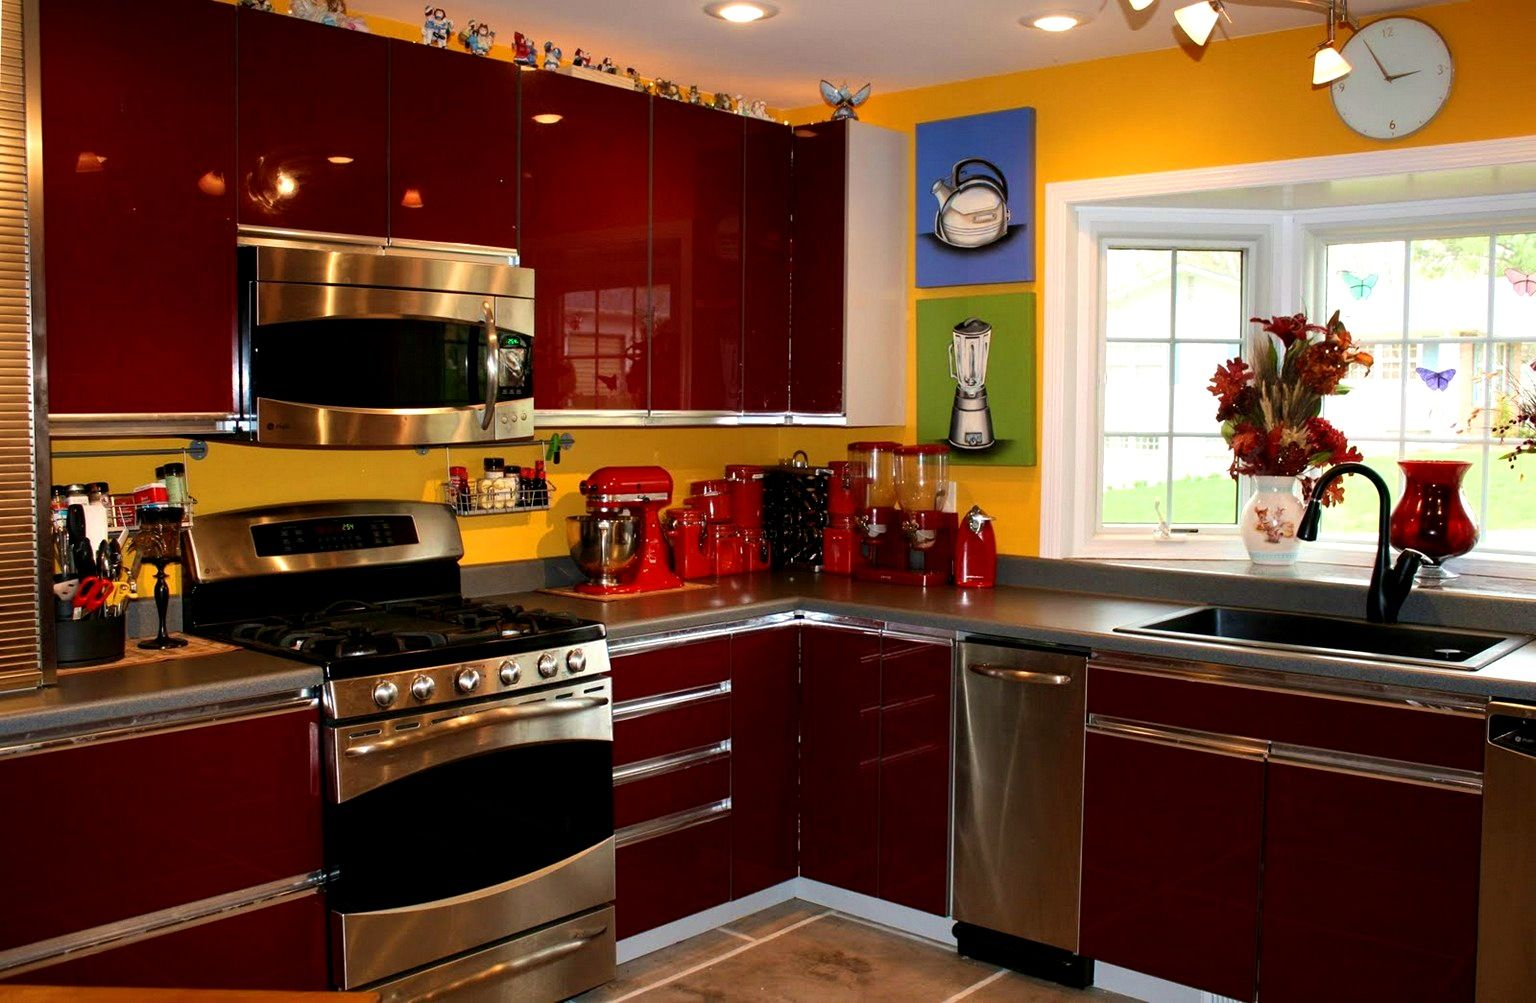 Accessories Picturesque Images About Red Black And White Kitchen Grey Walls Yellow Decorating Wallpa Black Kitchen Decor Kitchen Decor Sets Apple Kitchen Decor